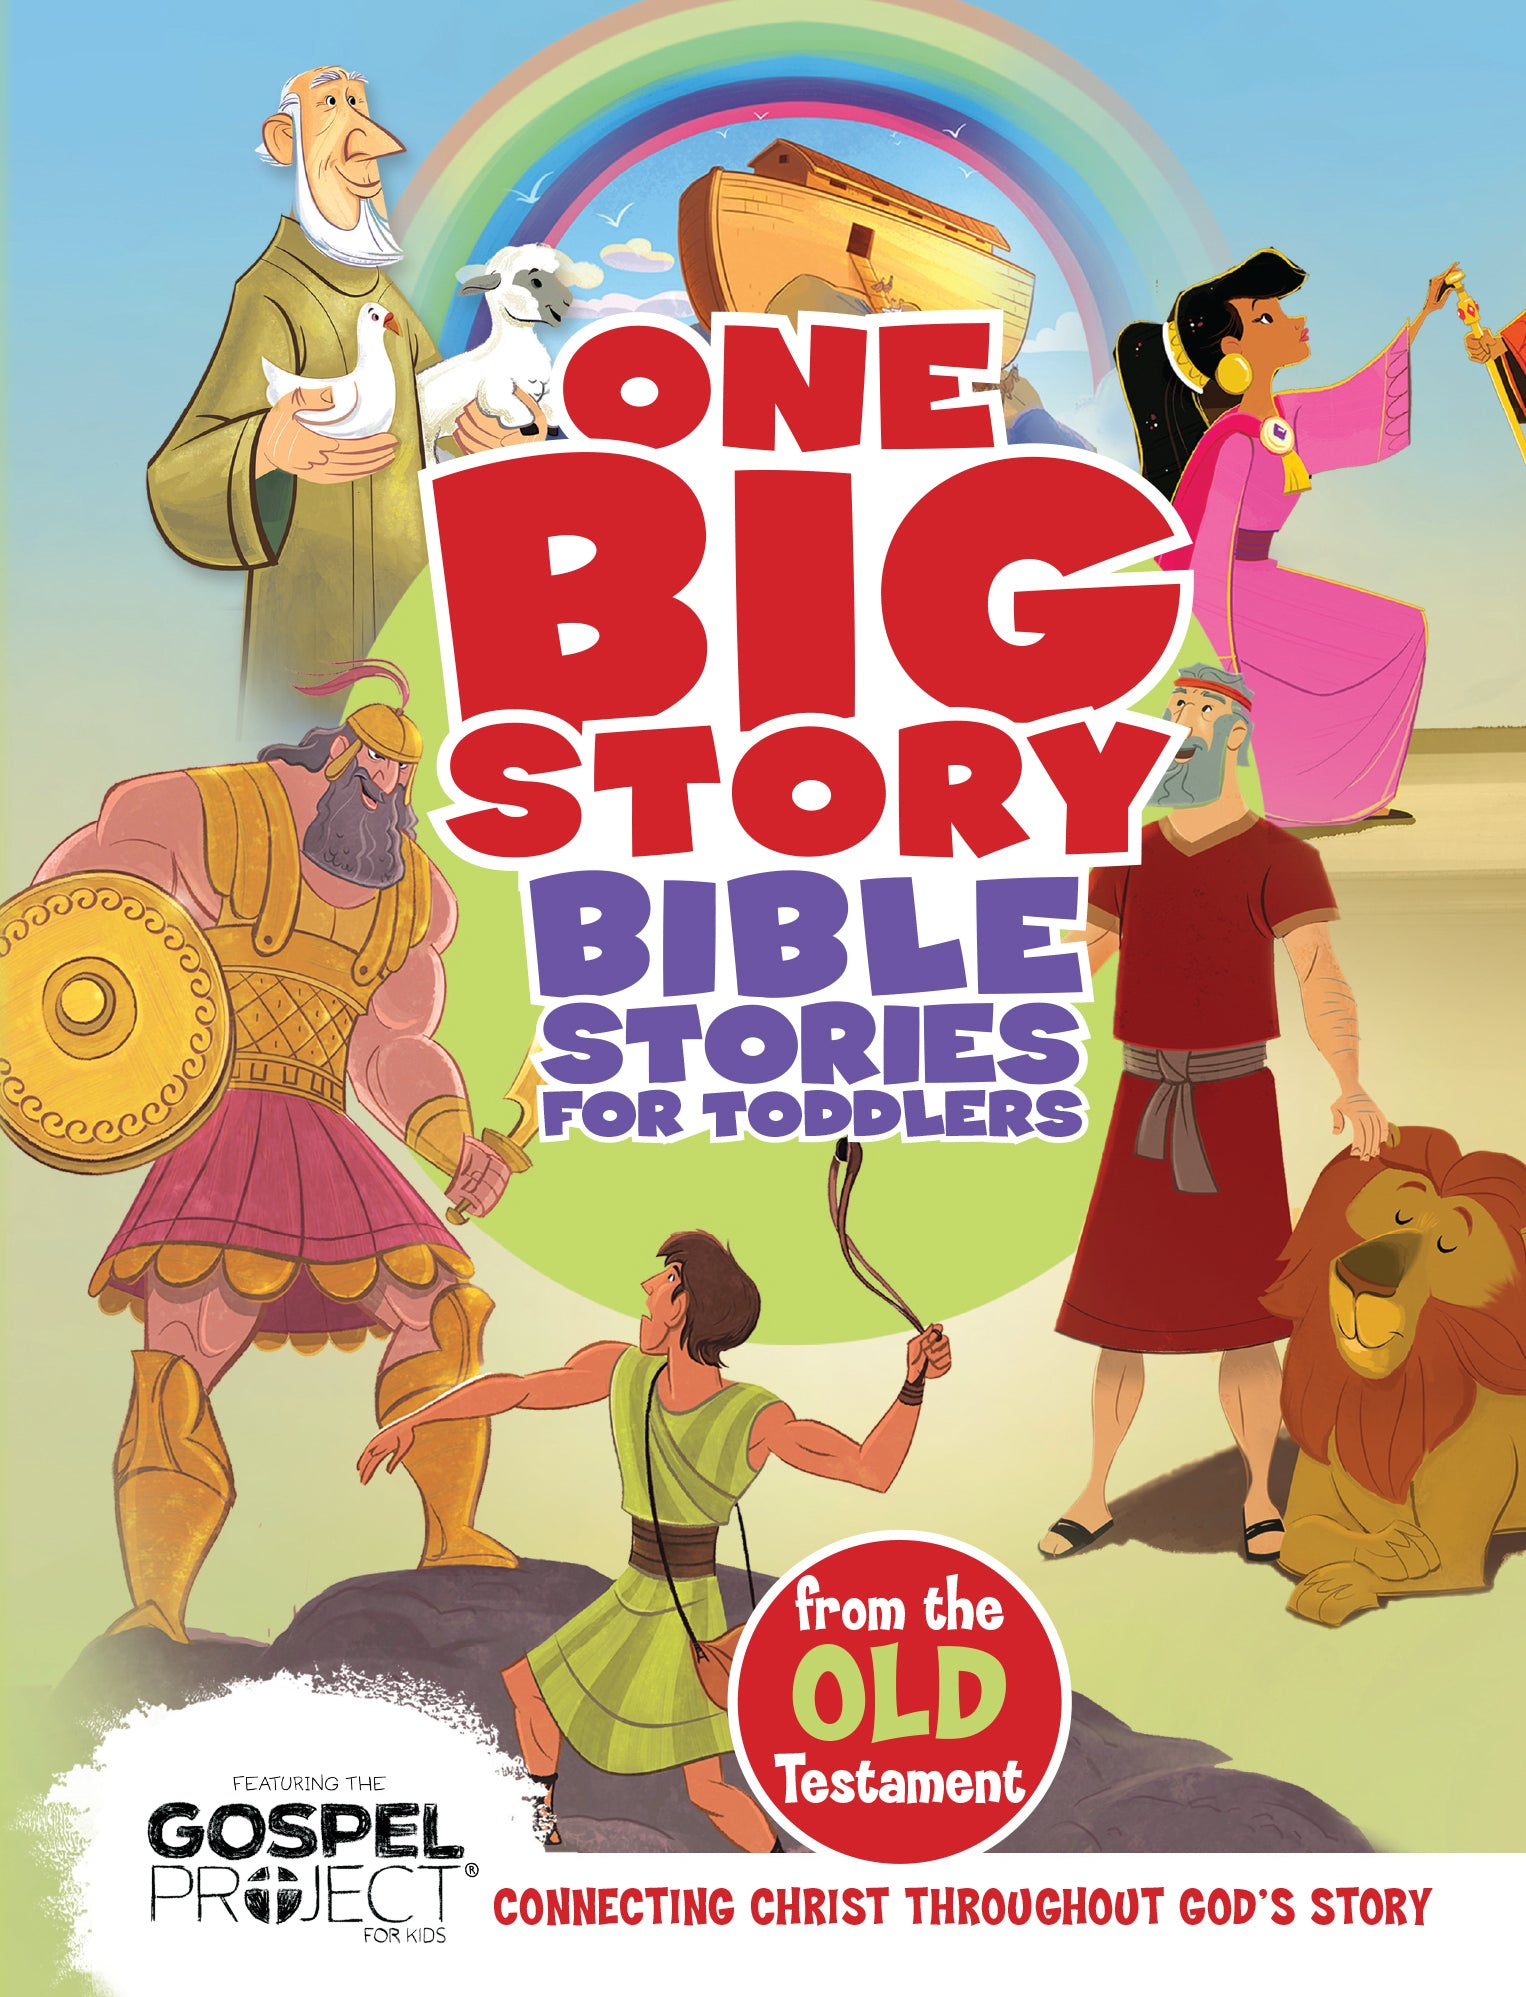 Bible Stories For Toddlers From The Old Testament (One Big Story)